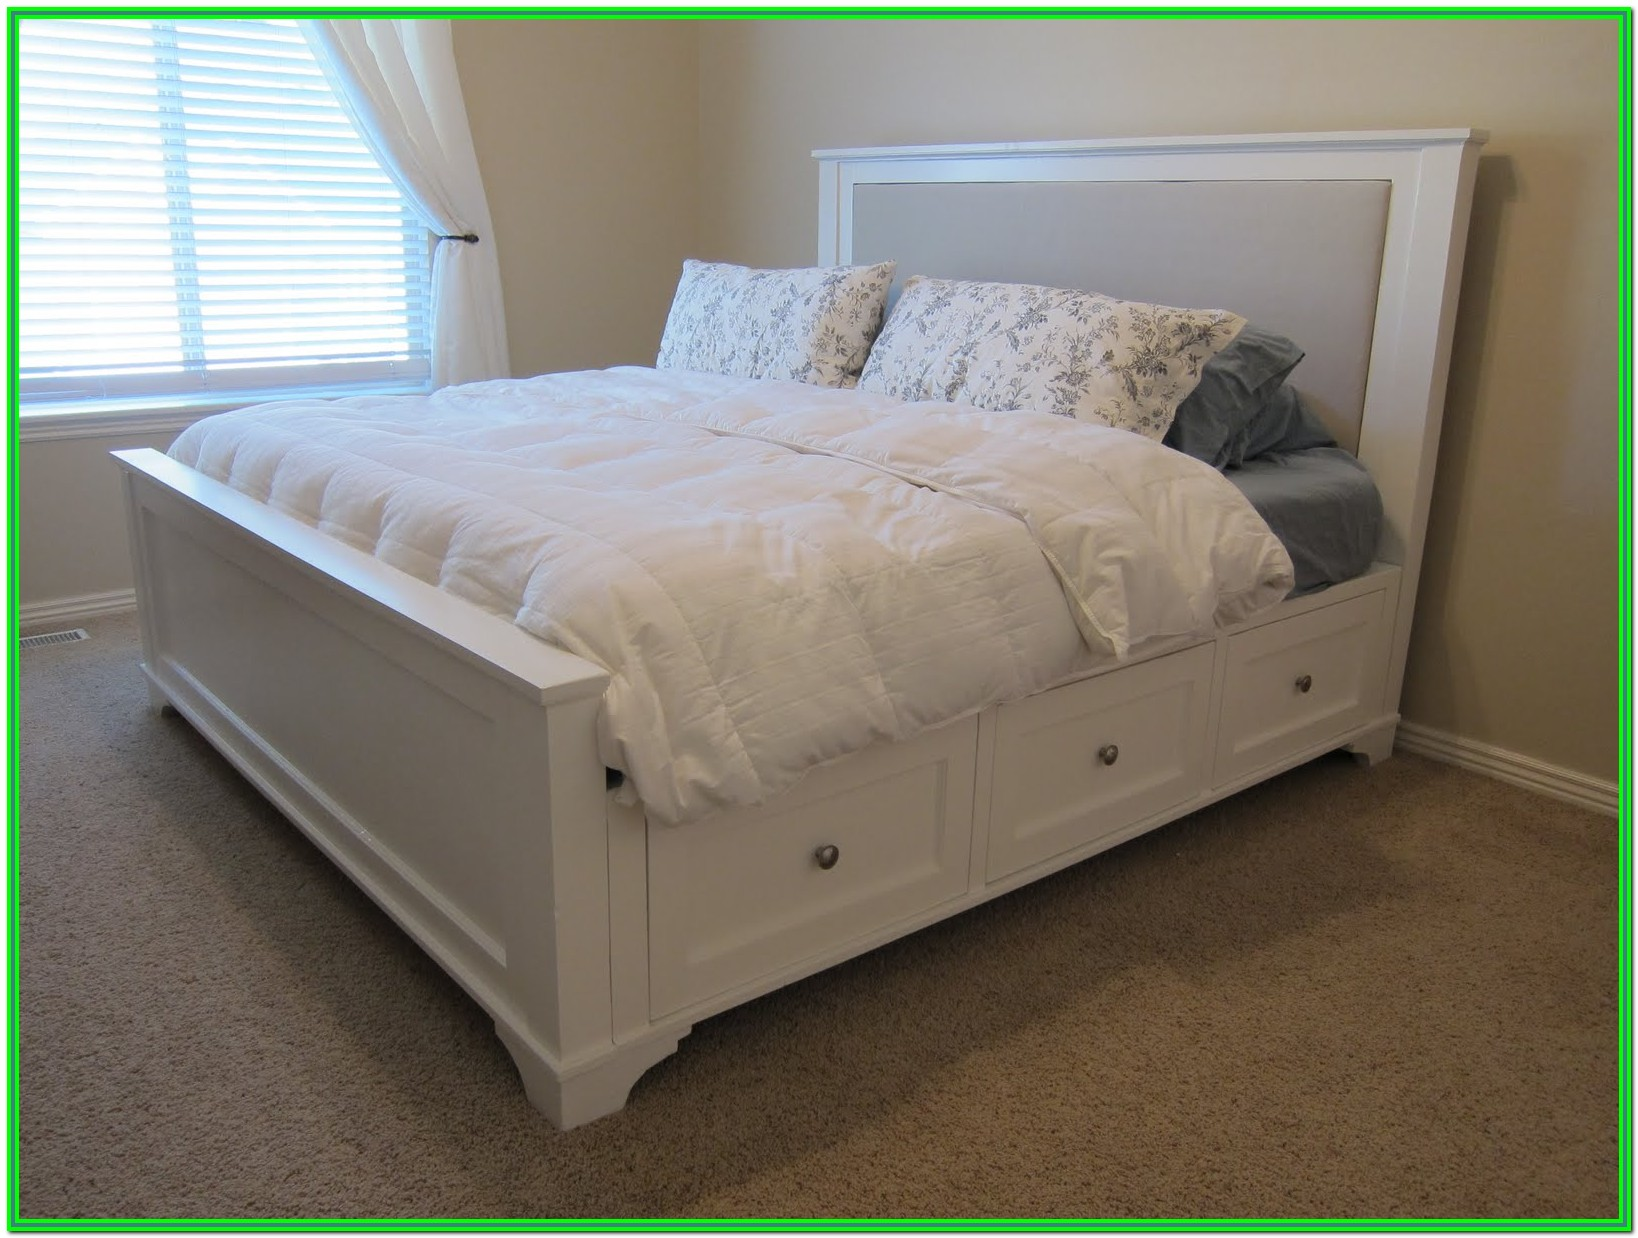 King Bed Frame With Storage Drawers